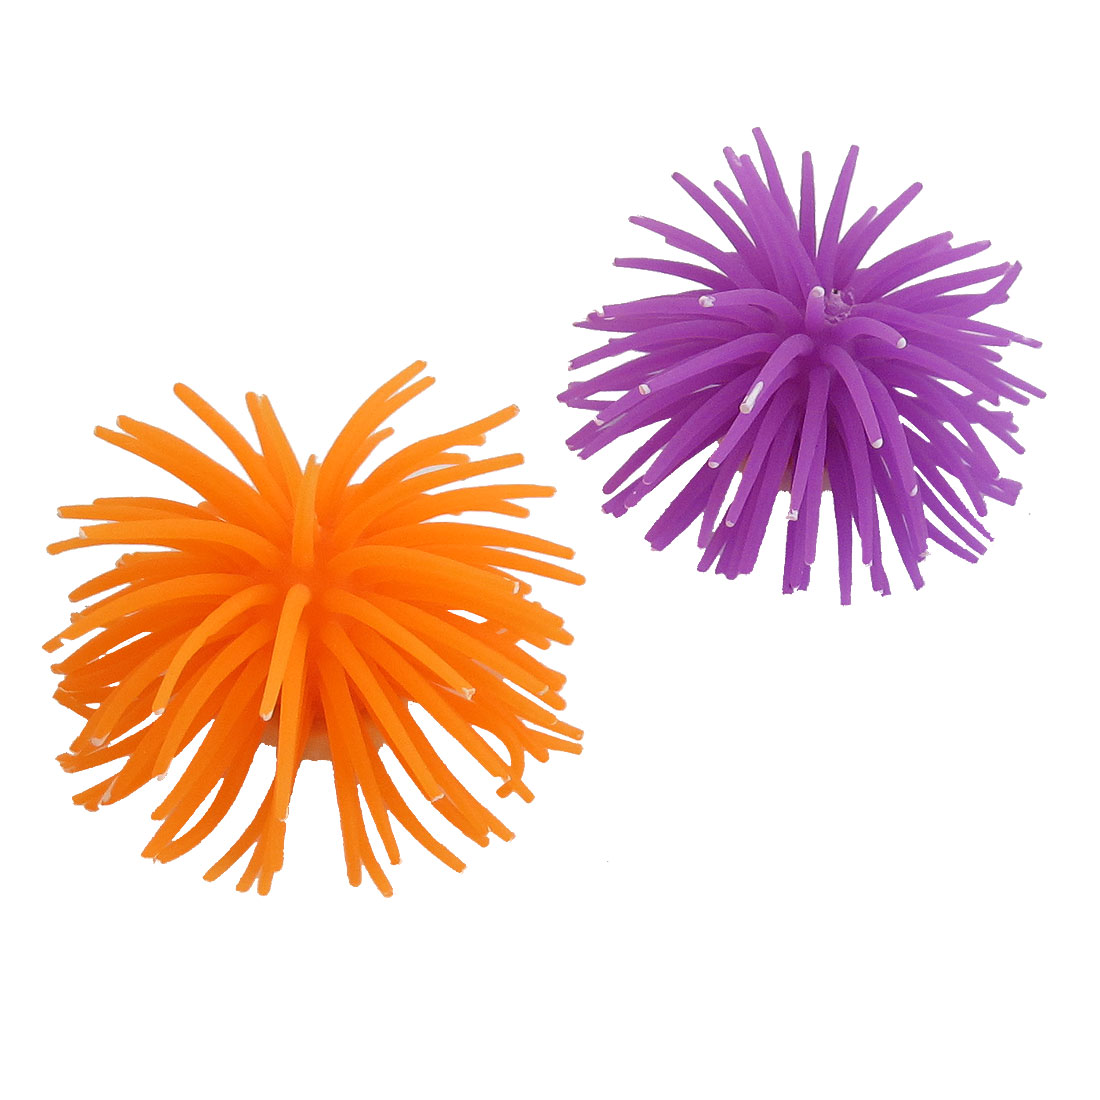 Aquarium Purple Orange Soft Silicone Manmade Corals Shaped Ornament 2pcs